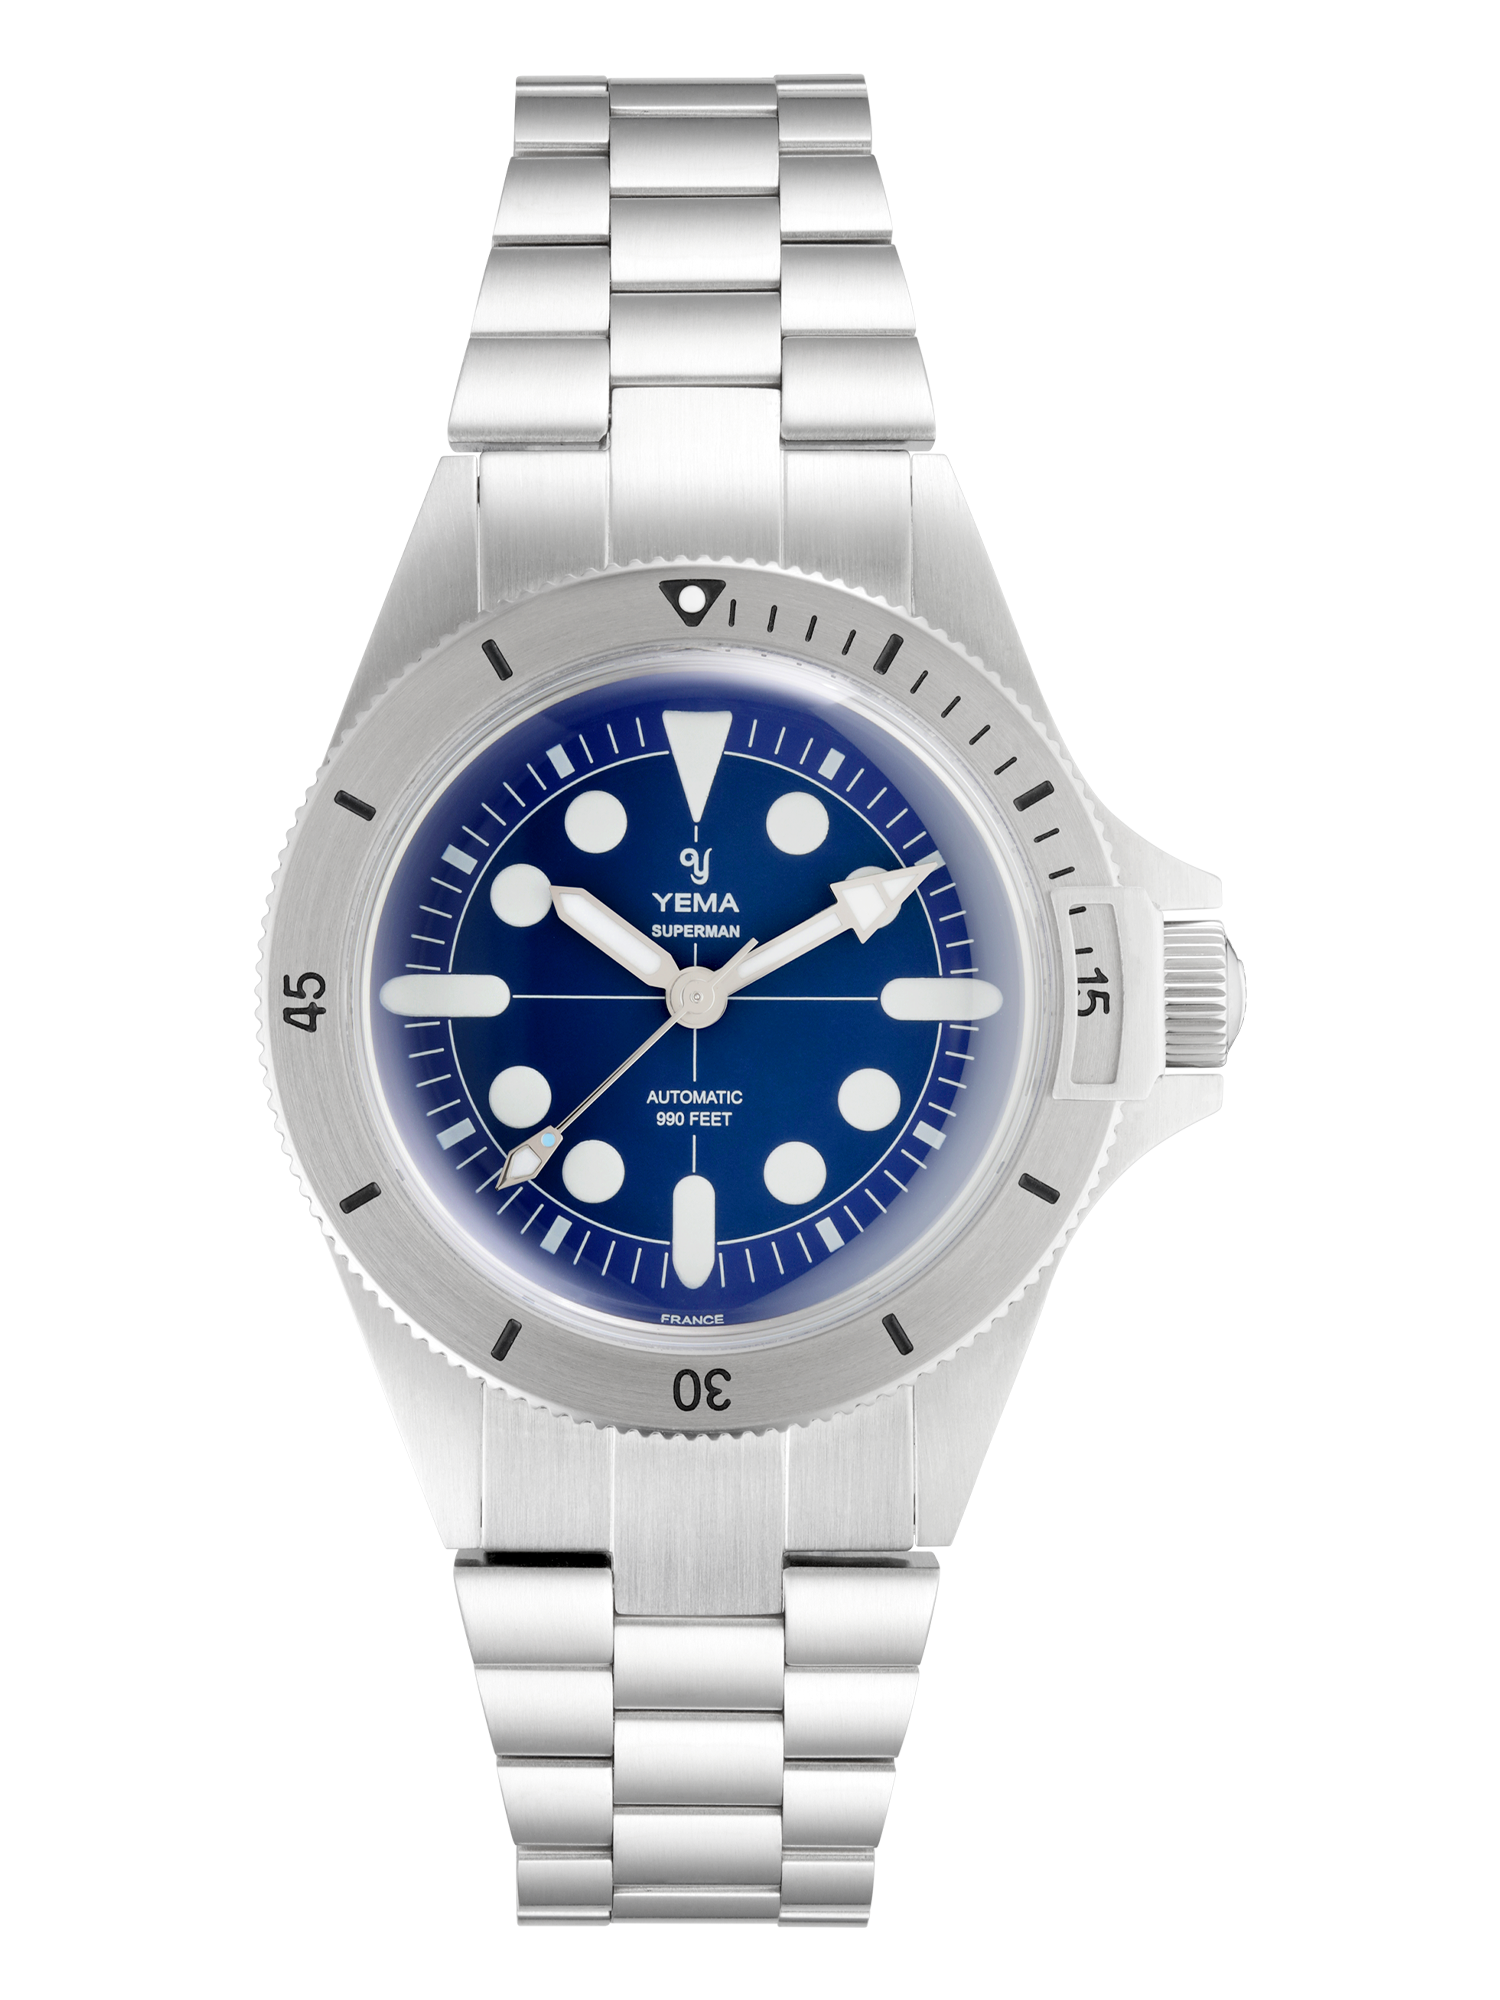 YEMA SUPERMAN MAXI DIAL BLUE, cadra double ton bleu, indexs surdimensionnés blancs.